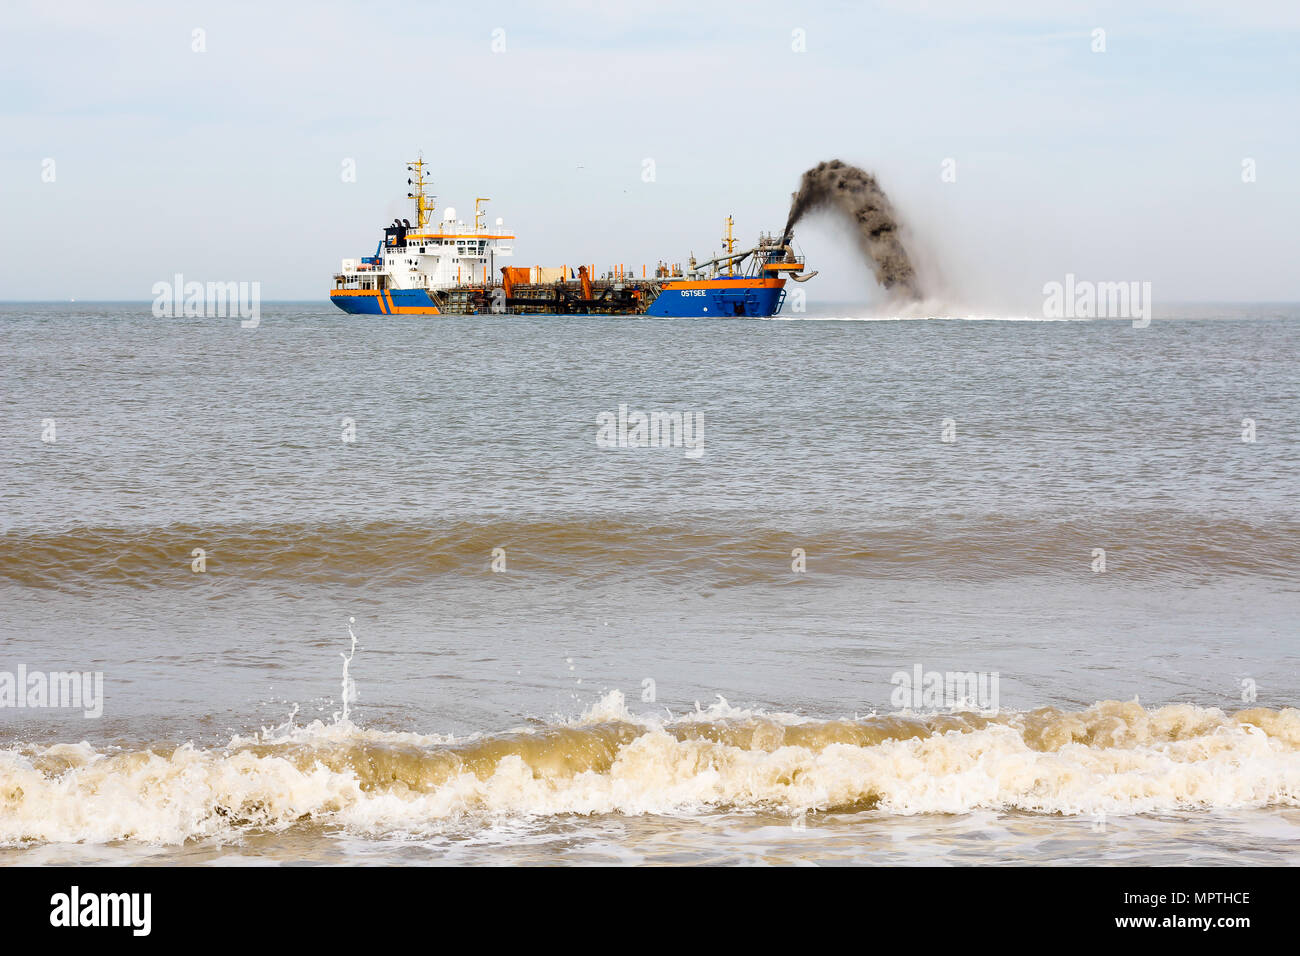 Kijkduin, The Hague, the Netherlands - April 2 2011: Ship pumping sand onto beach for coastal defense - Stock Image